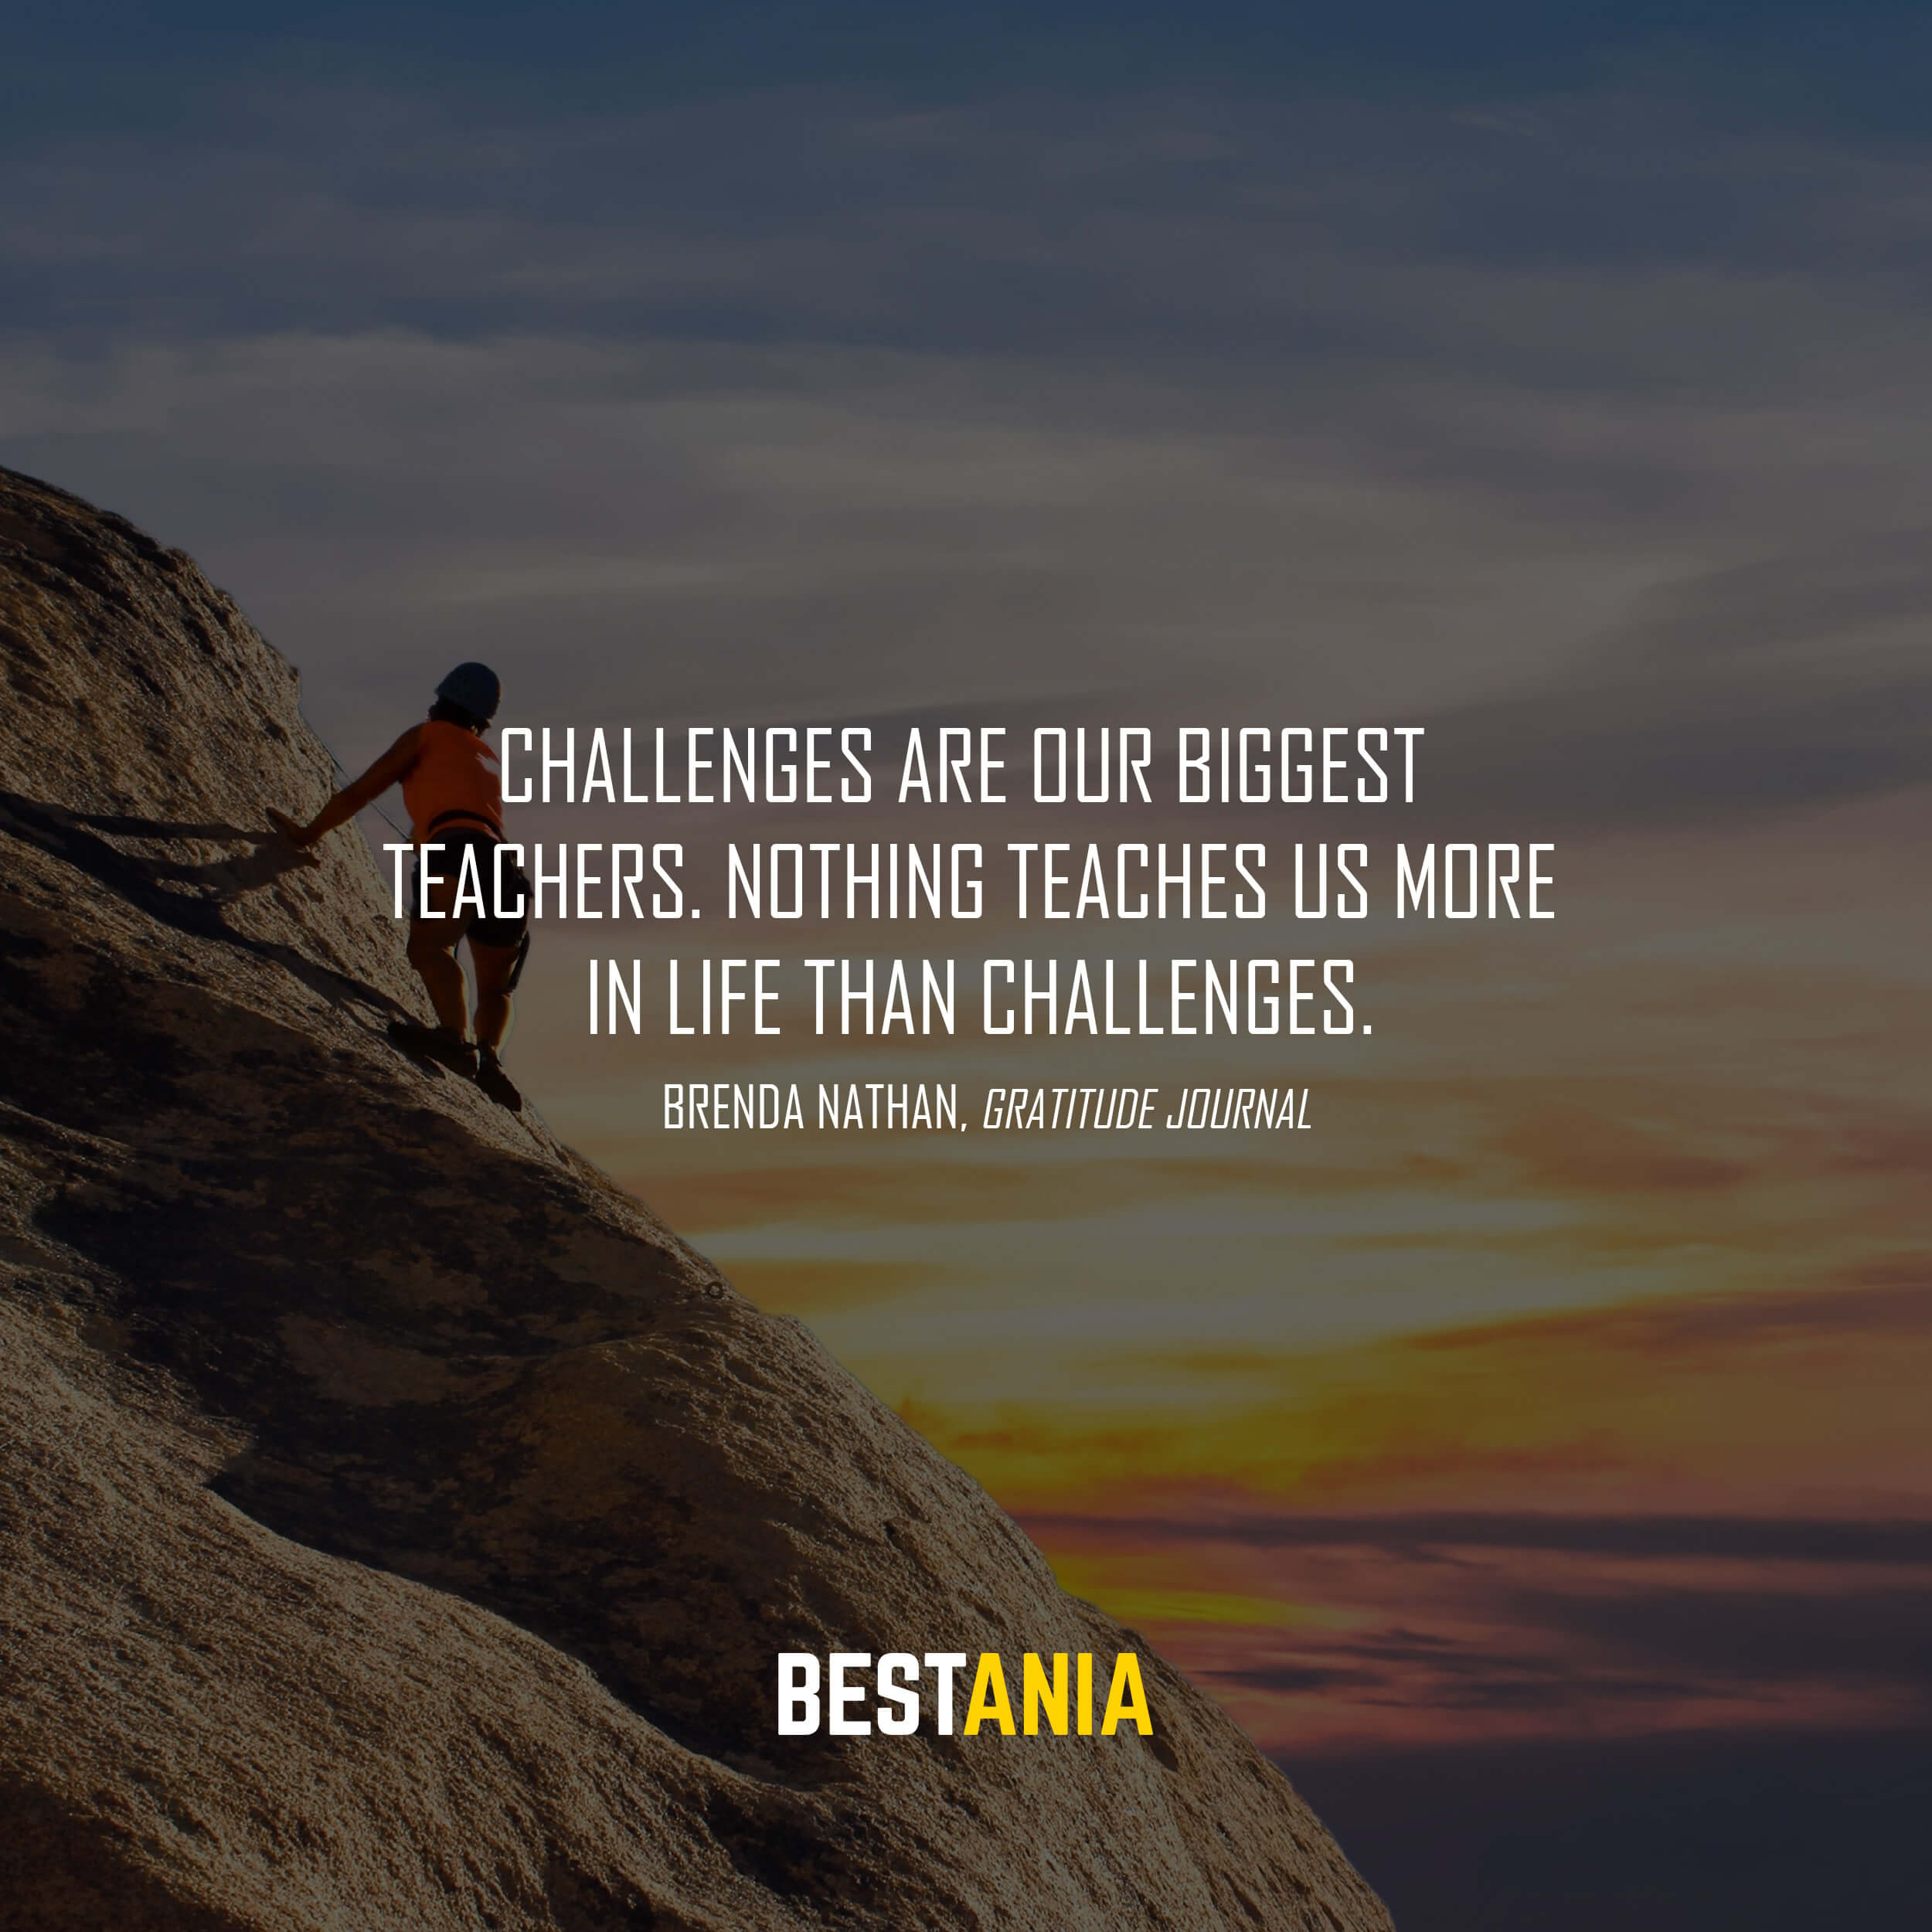 """Challenges are our biggest teachers. Nothing teaches us more in life than challenges."" Brenda Nathan, Gratitude Journal"